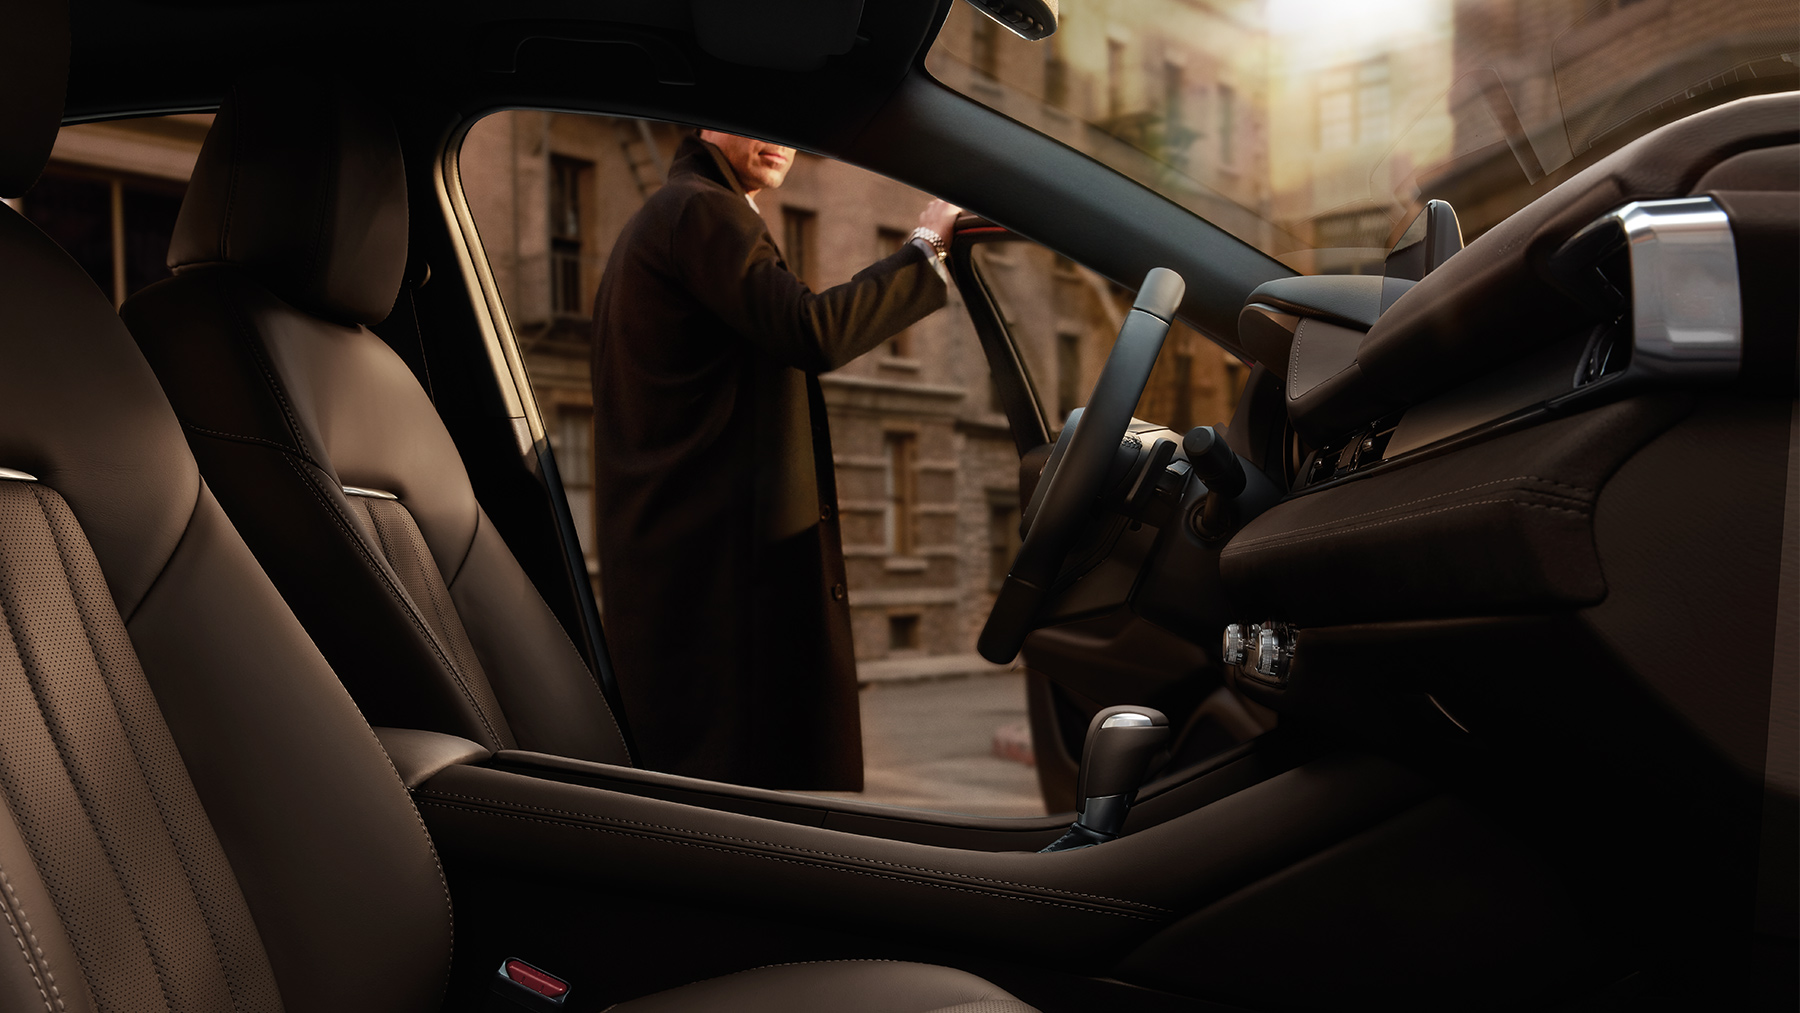 You'll Love the Luxurious Amenities in the 2019 Mazda6!